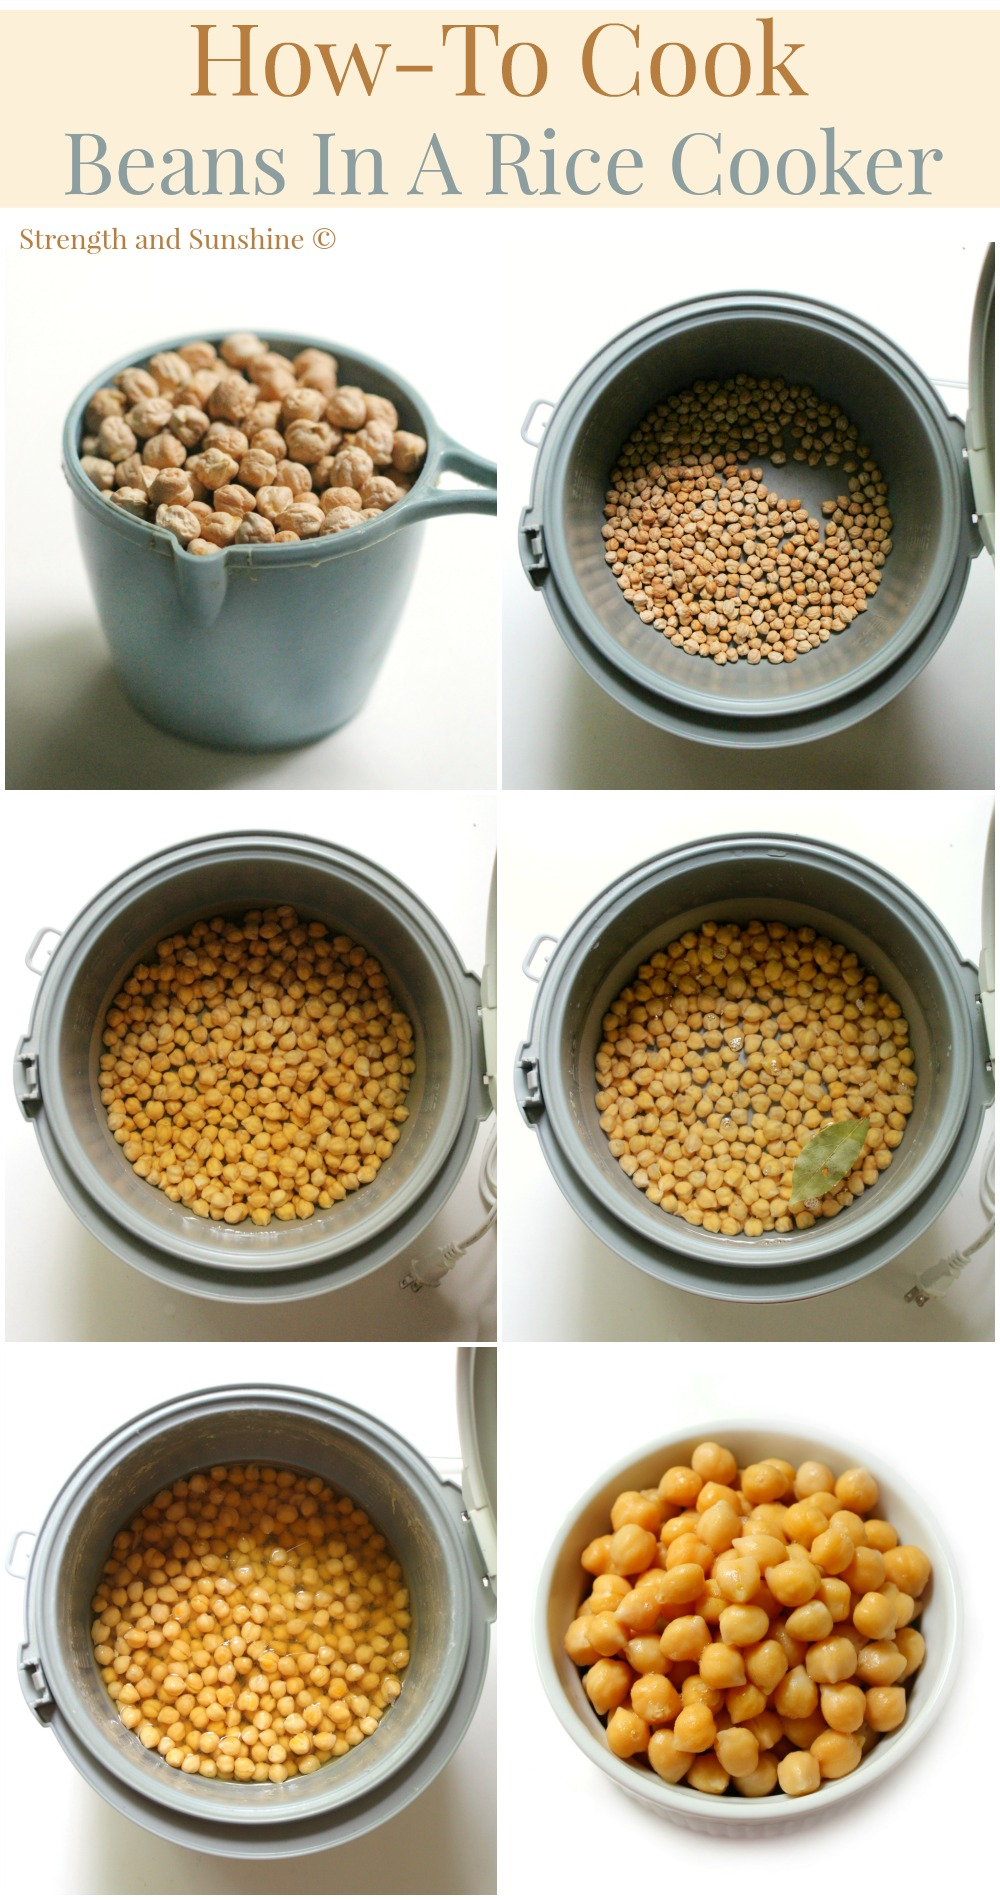 How To Cook Beans In A Rice Cooker